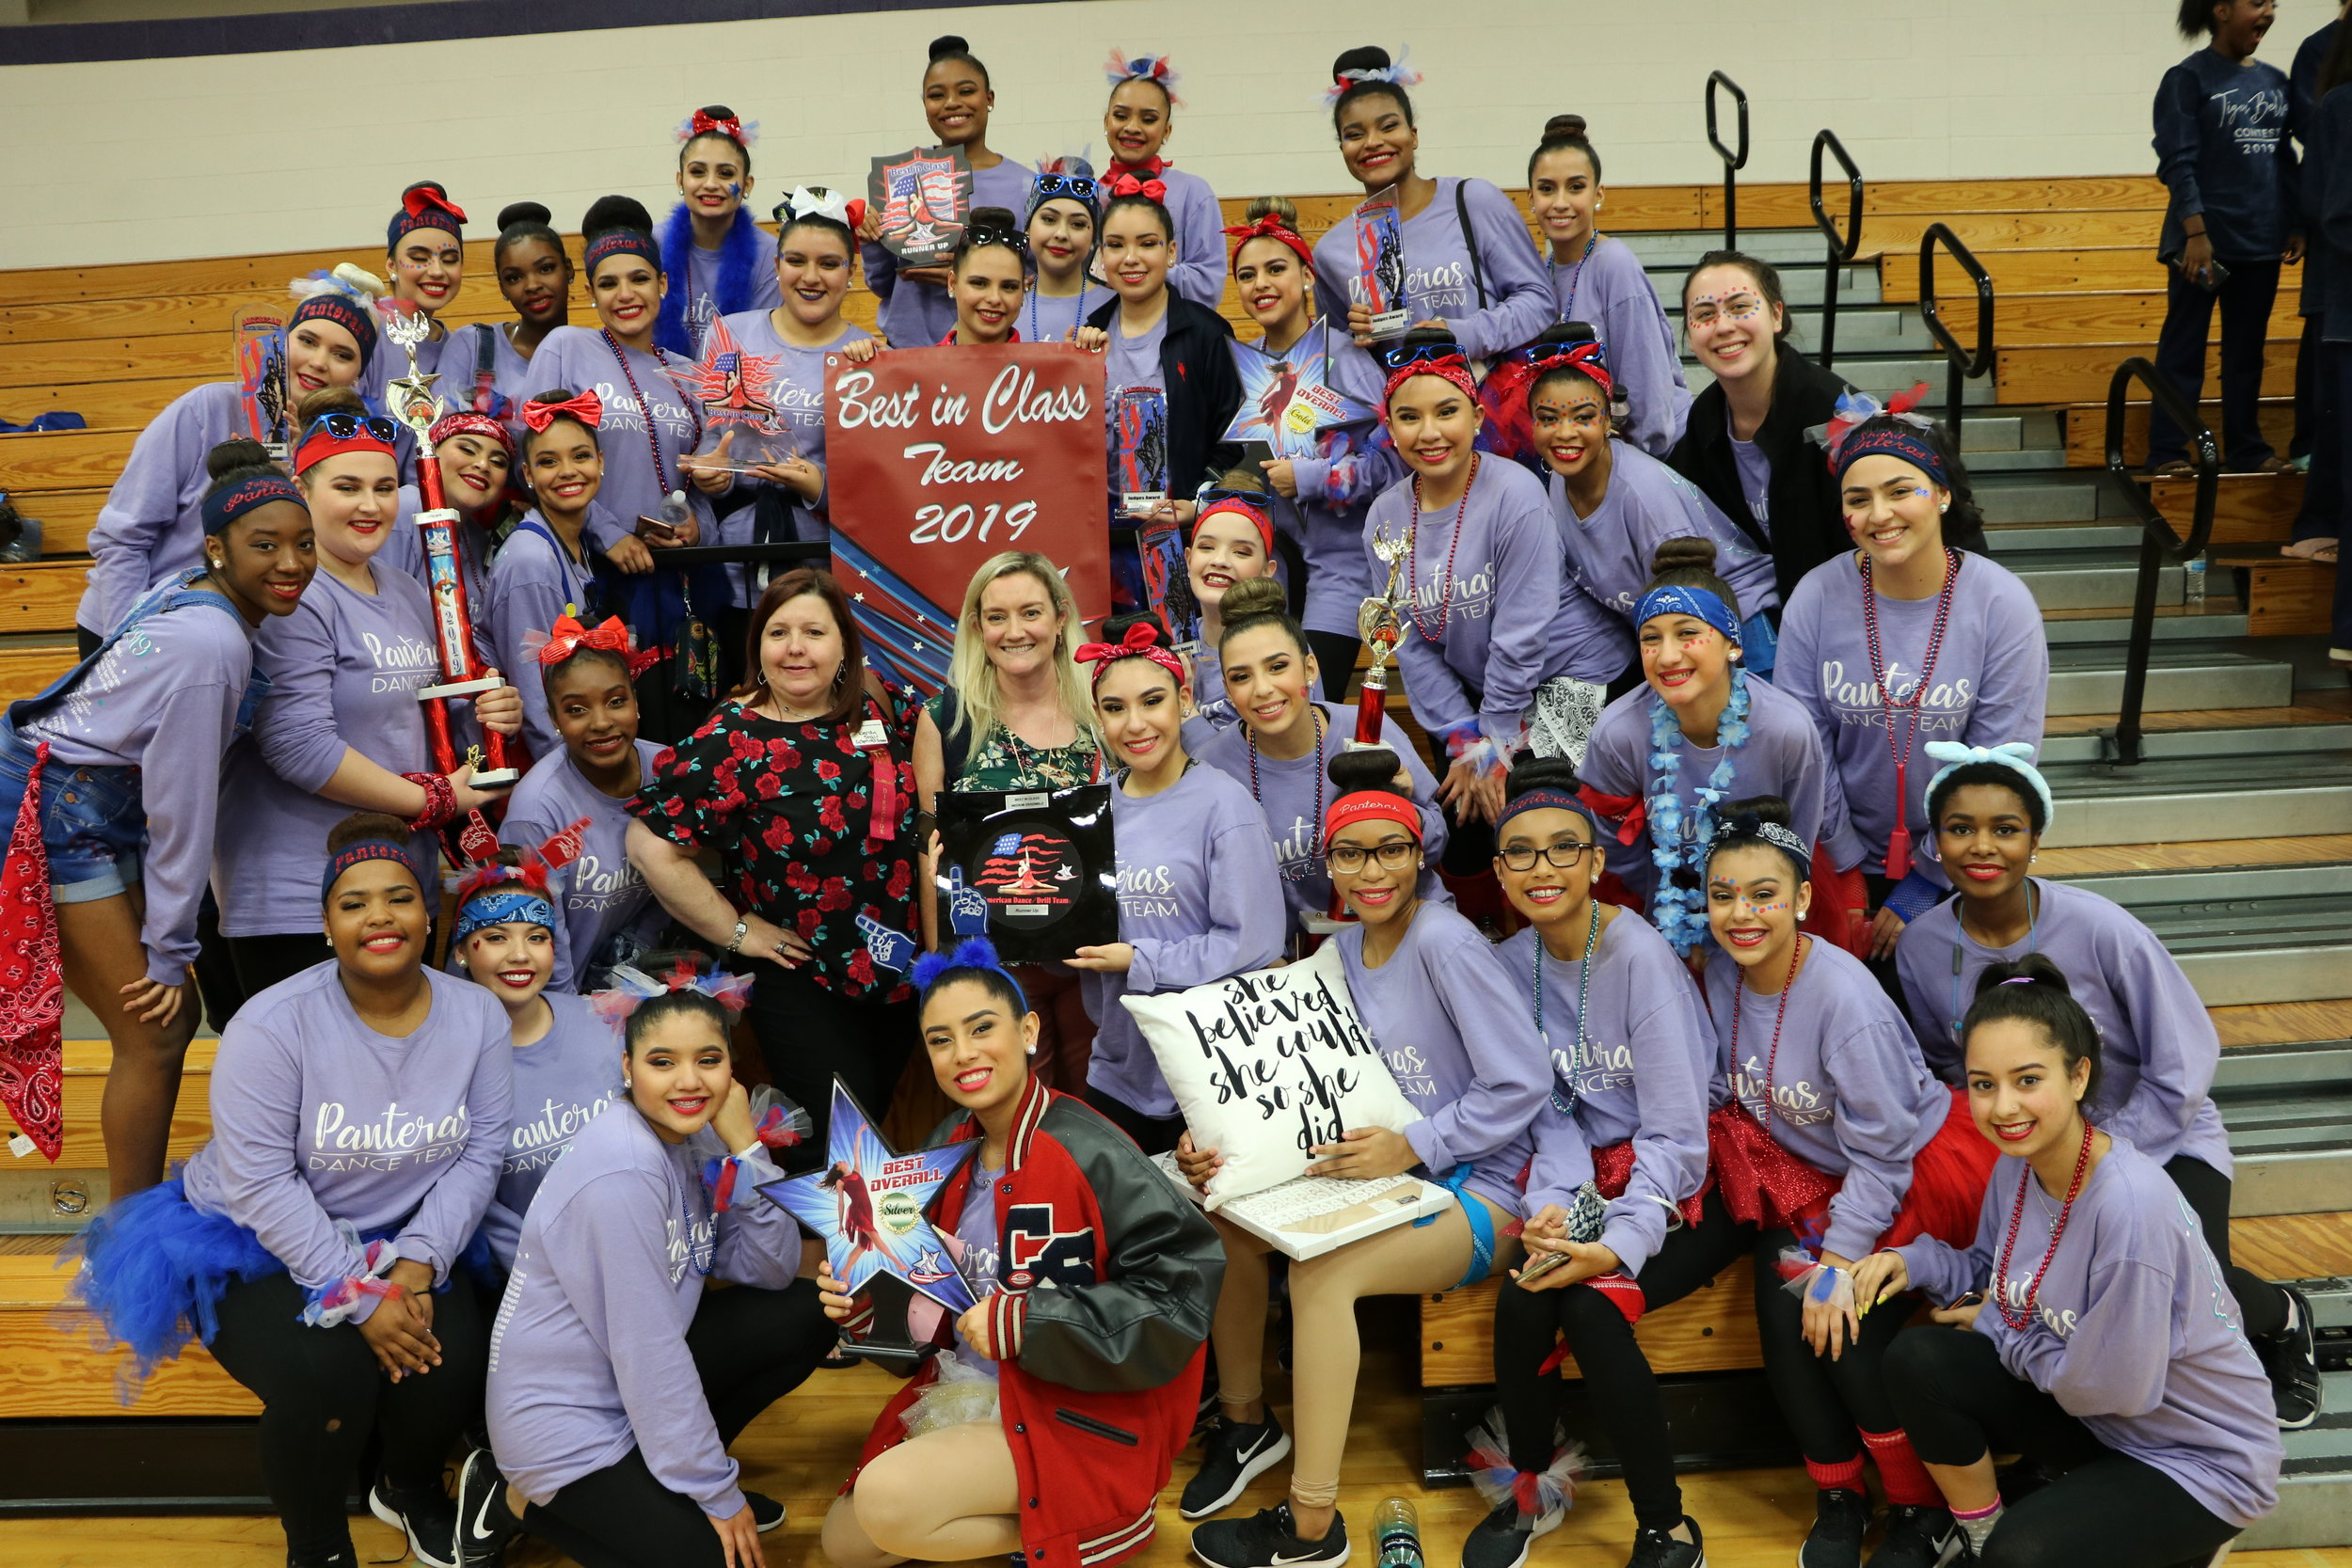 Panteras earn hardware after first-place finish.. (Photo by Panteras)